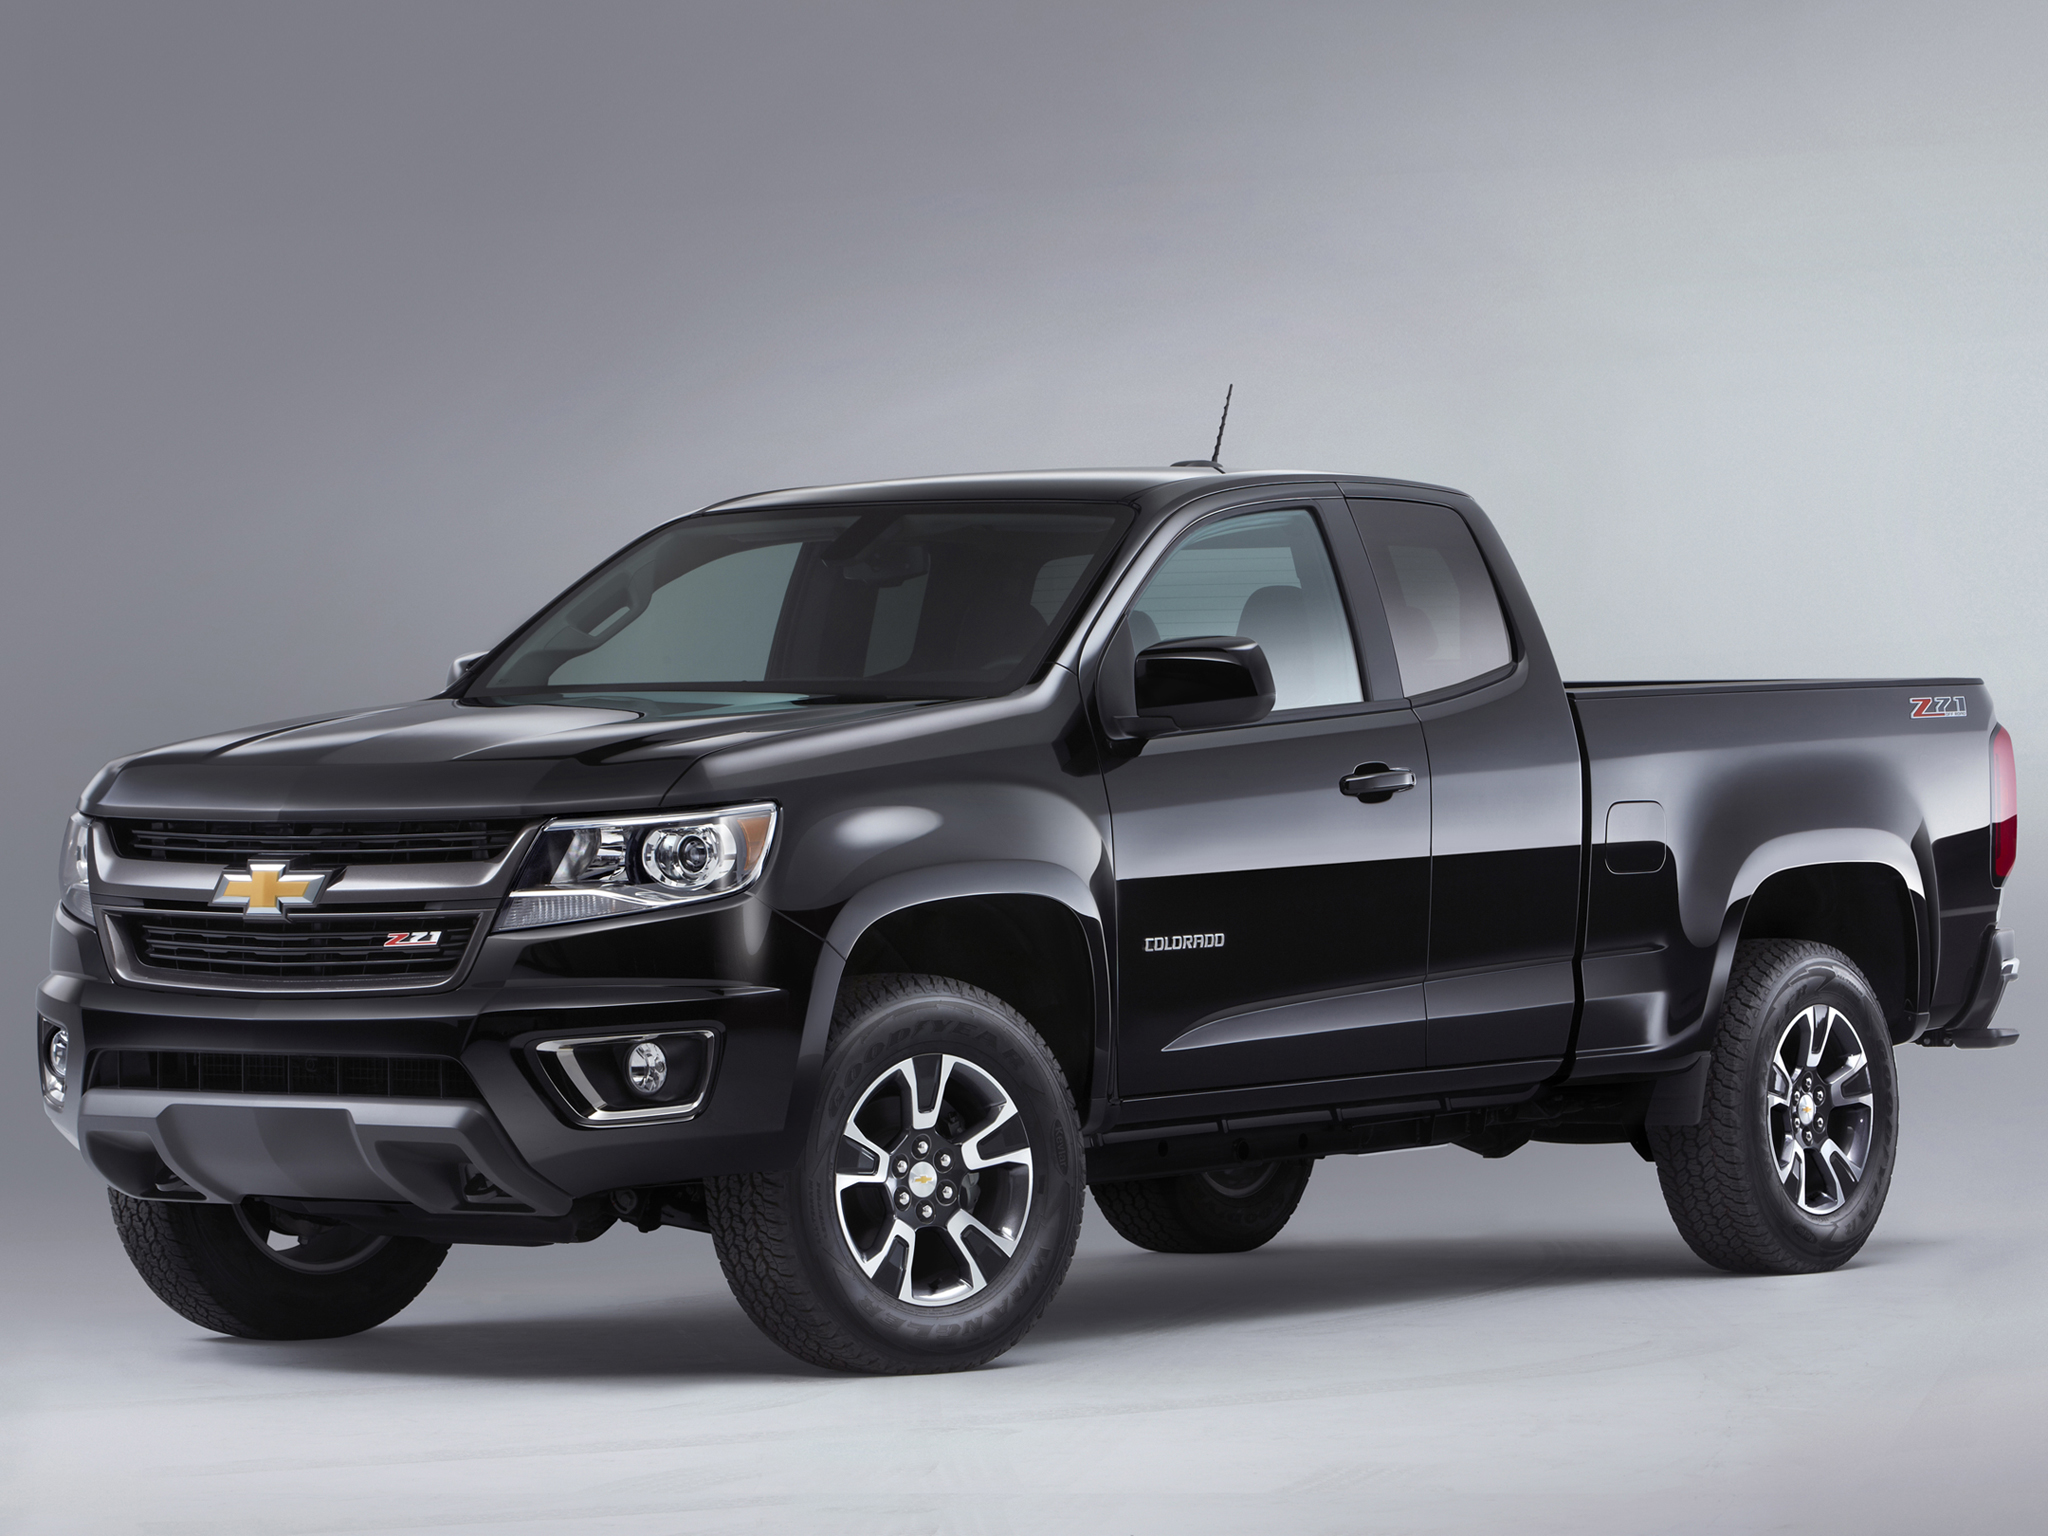 2014 Chevrolet Colorado Z71 Extended Cab pickup 4x4 t wallpaper